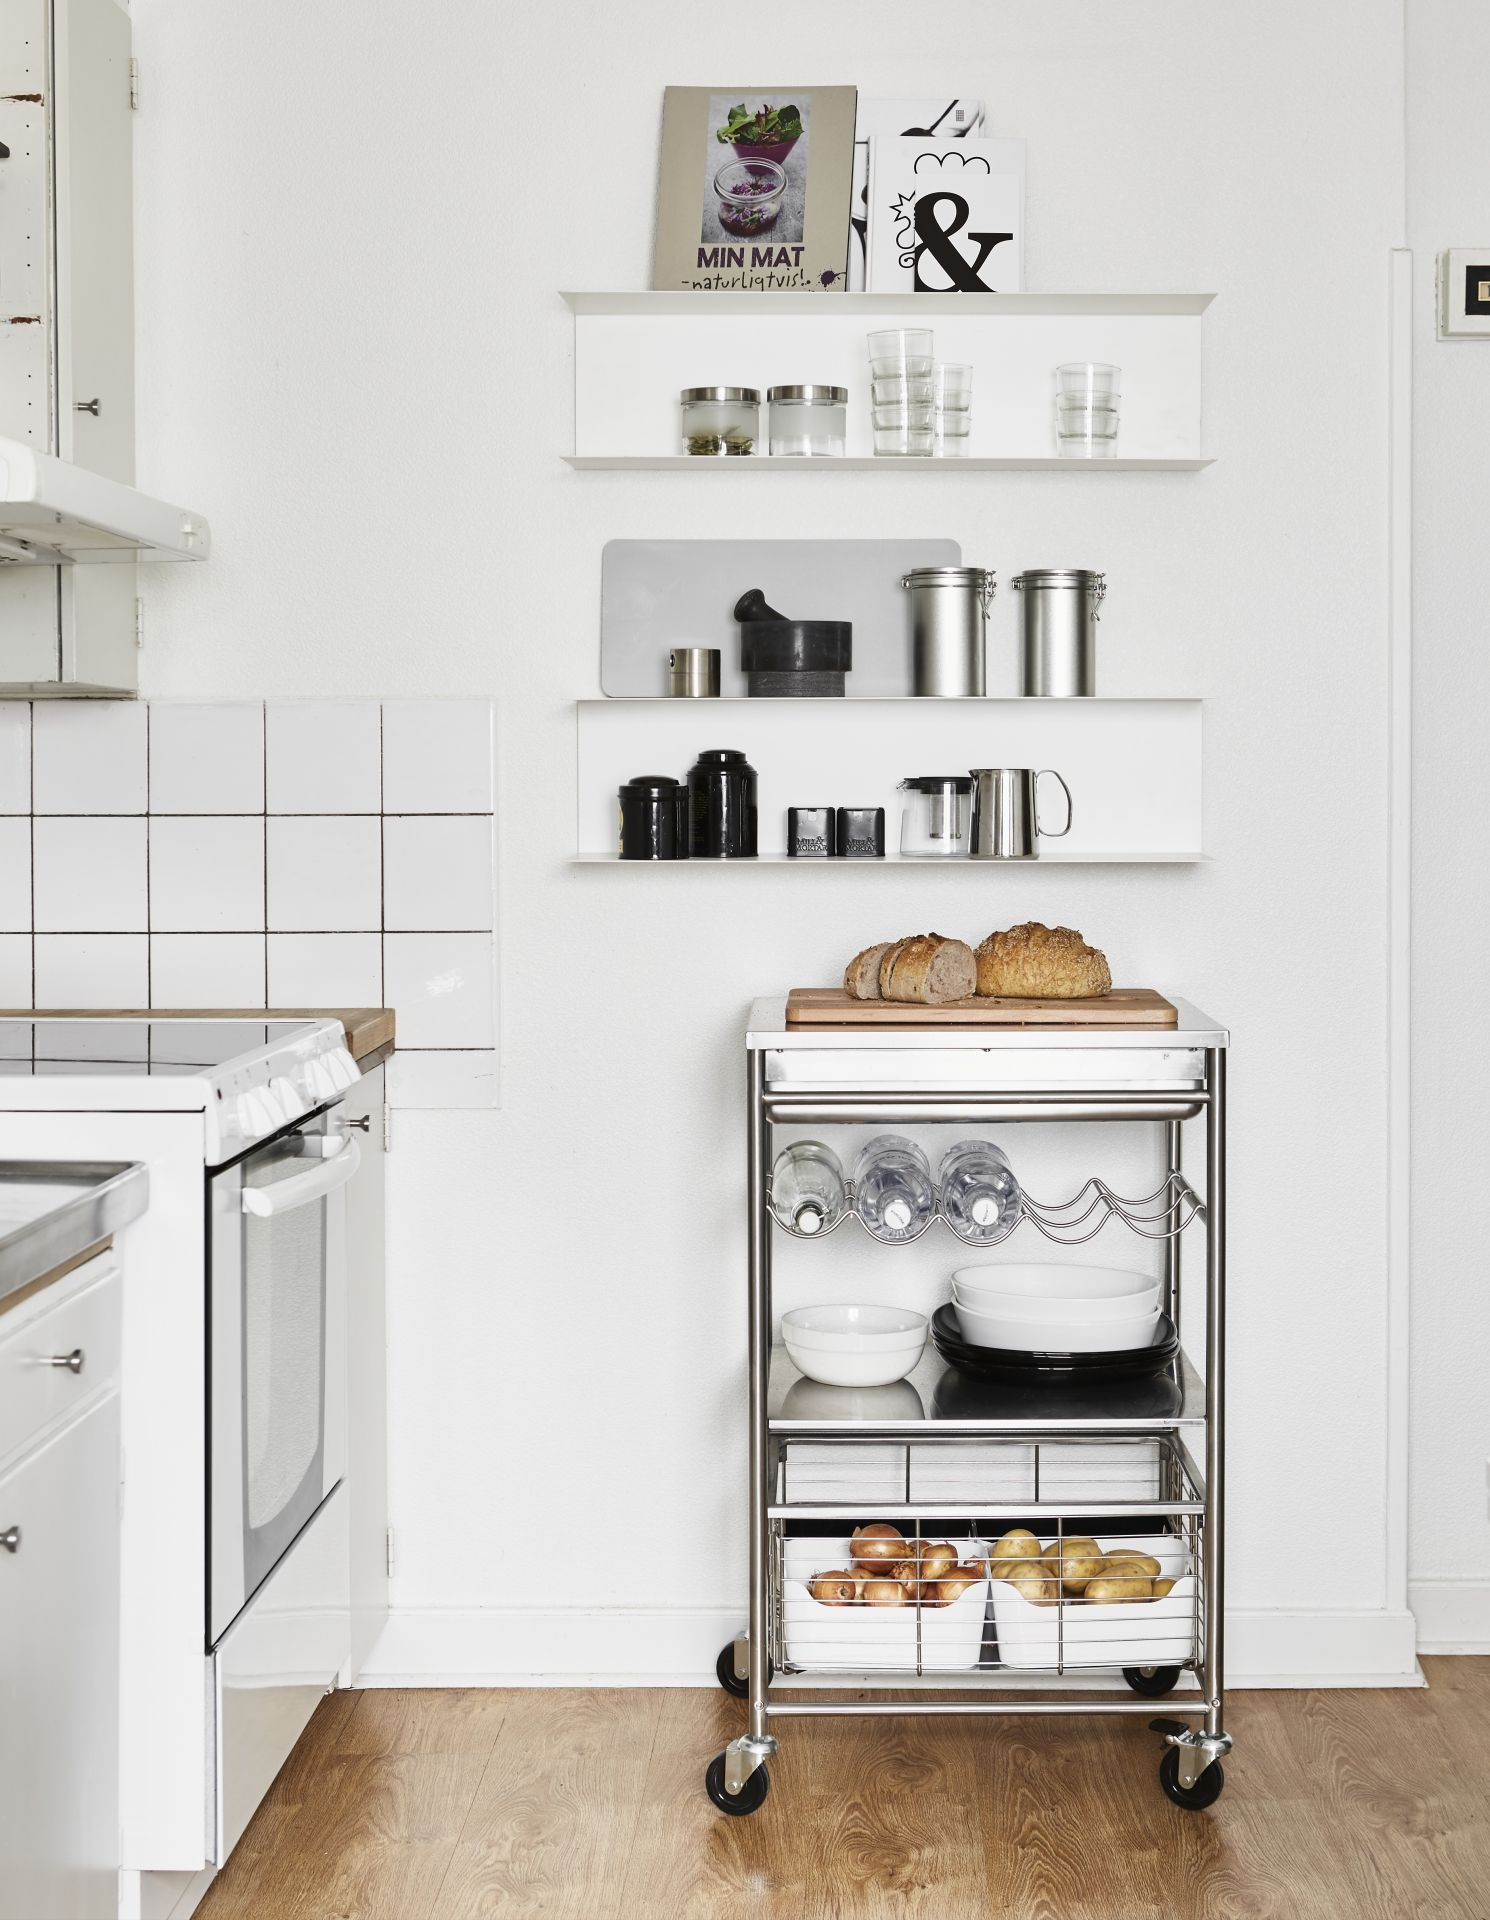 Pin By Narjes S On Mojito Bar Ikea Pantry Kitchen Trolley Kitchen